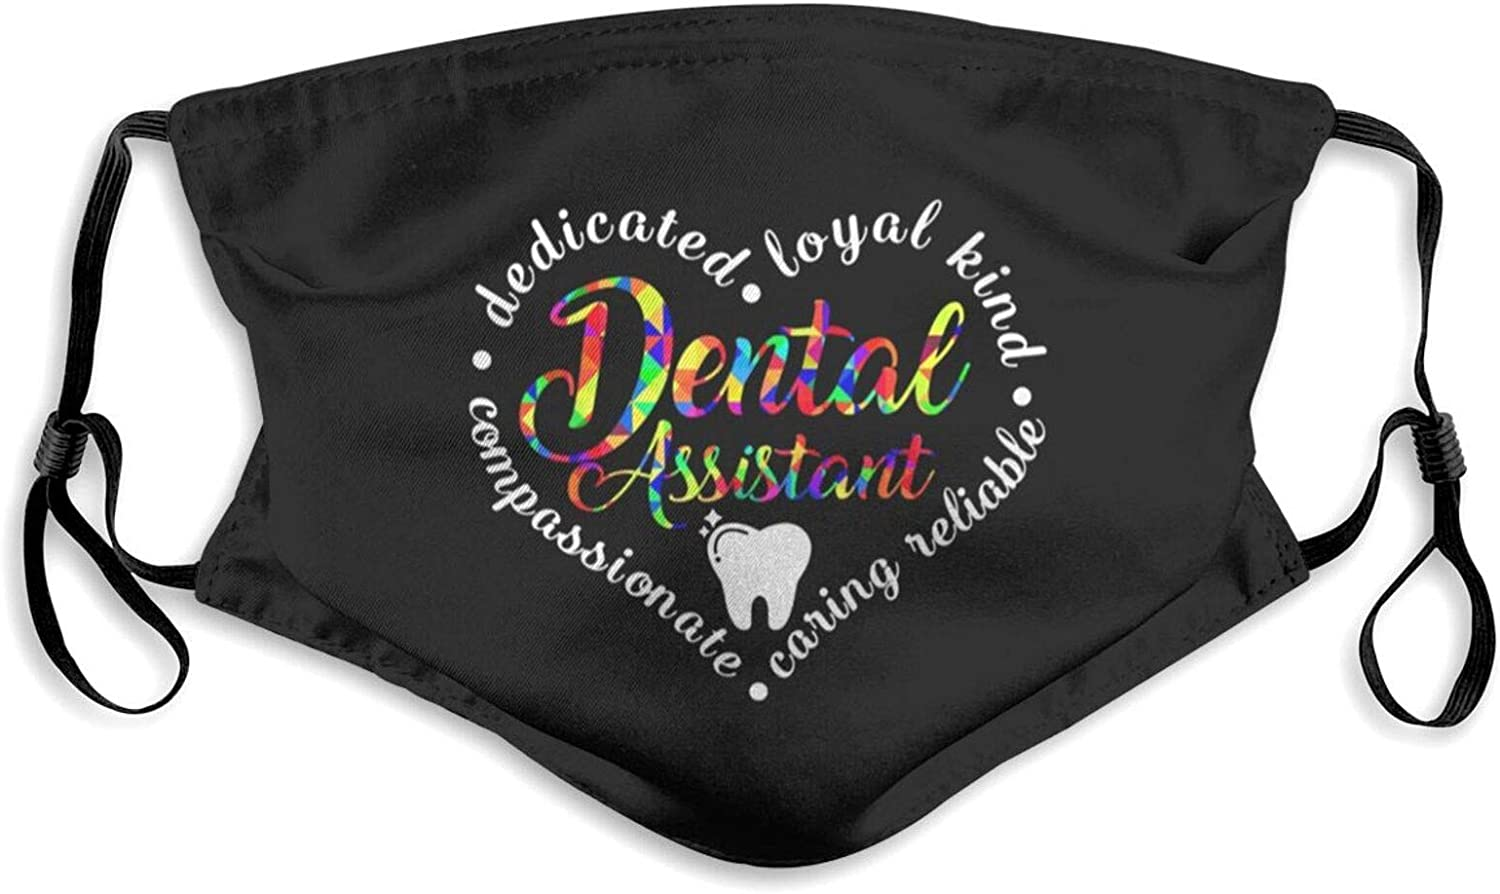 Dental Assistant Rdh Hygienist Week Dentist Face Mask Unisex Reusable Anti-Dust Windproof Face Mask Outdoor Fashion Bandanas Balaclava Black for Camping Travelling Cycling